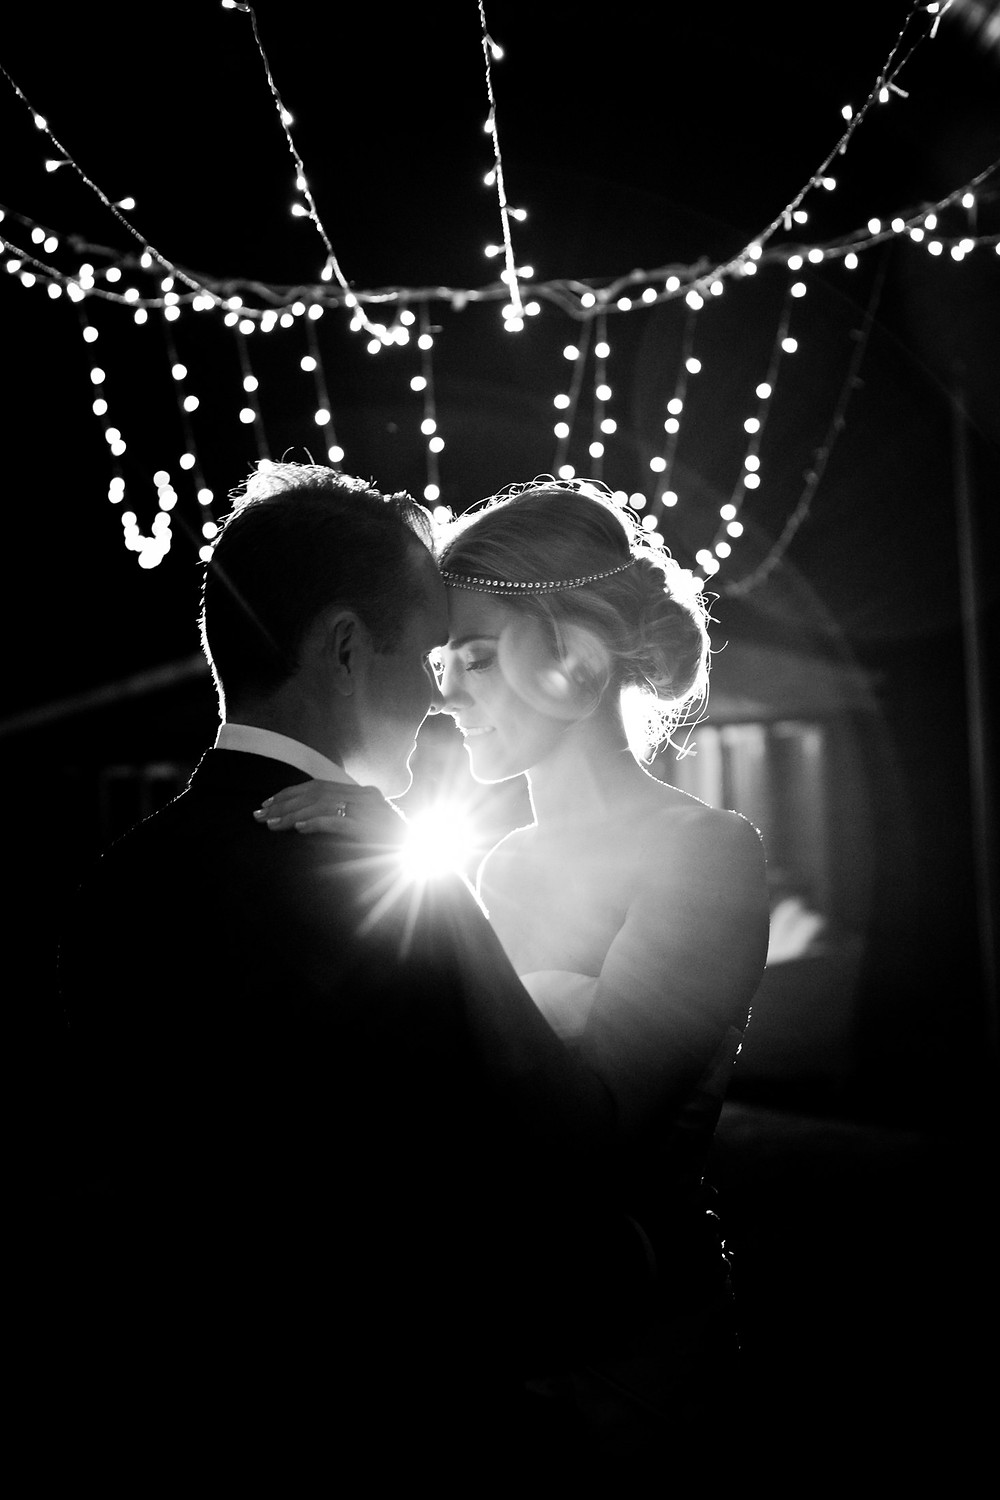 bride and groom dancing under fairylights at country wedding